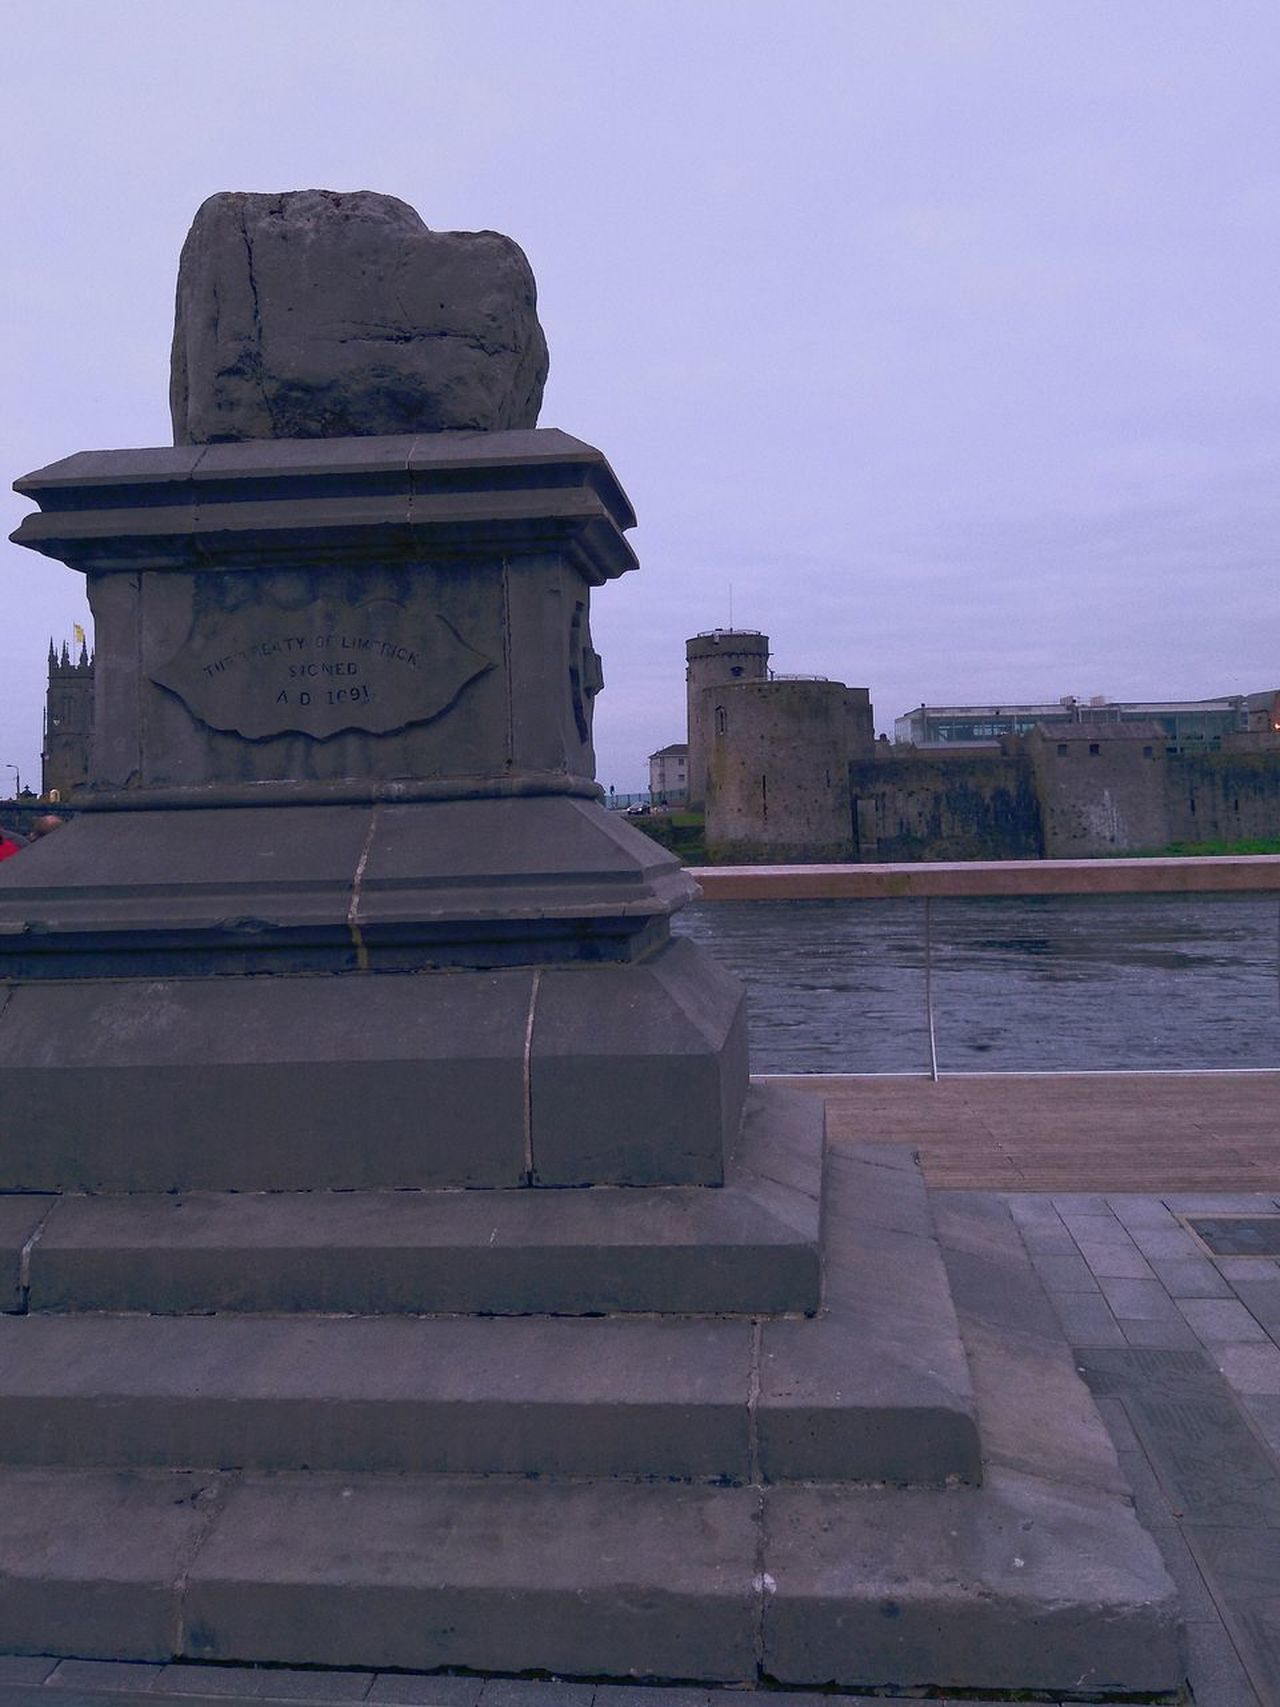 Limerick 2020 Architecture History Statue Sculpture City Water No People Outdoors Travel Destinations